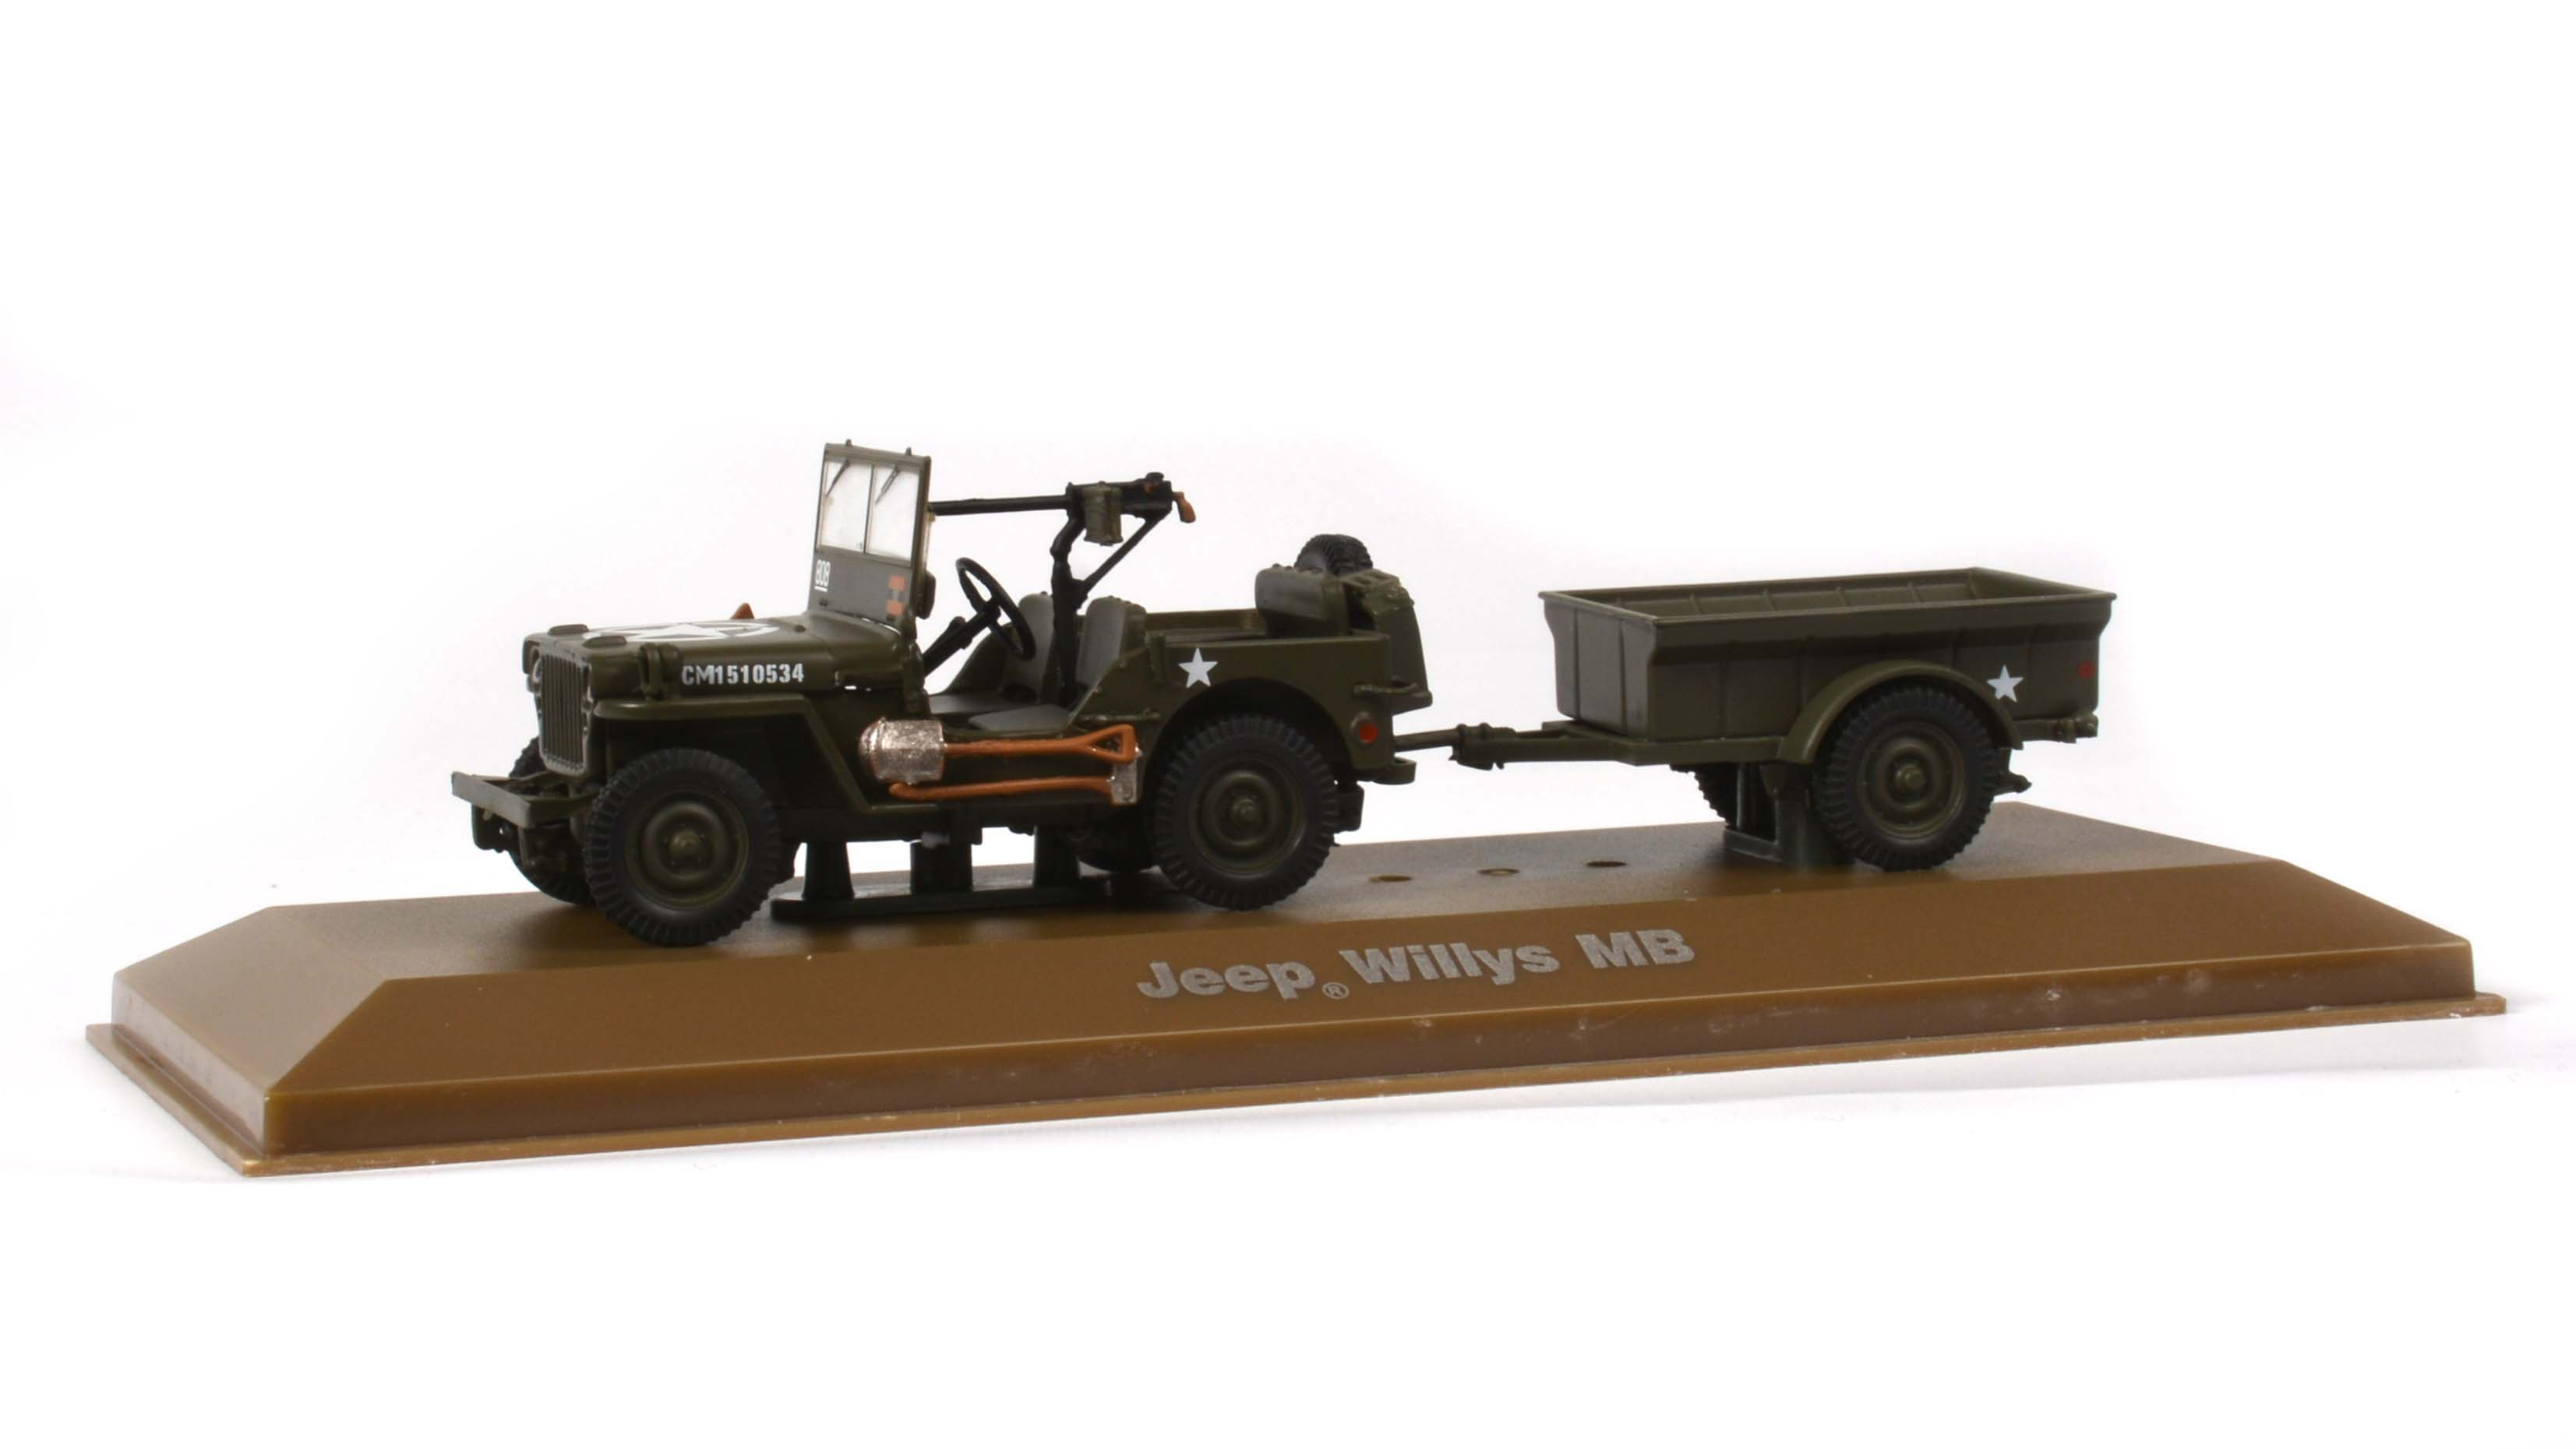 Jeep Willys MB 1:43 - Atlas časopis s modelem